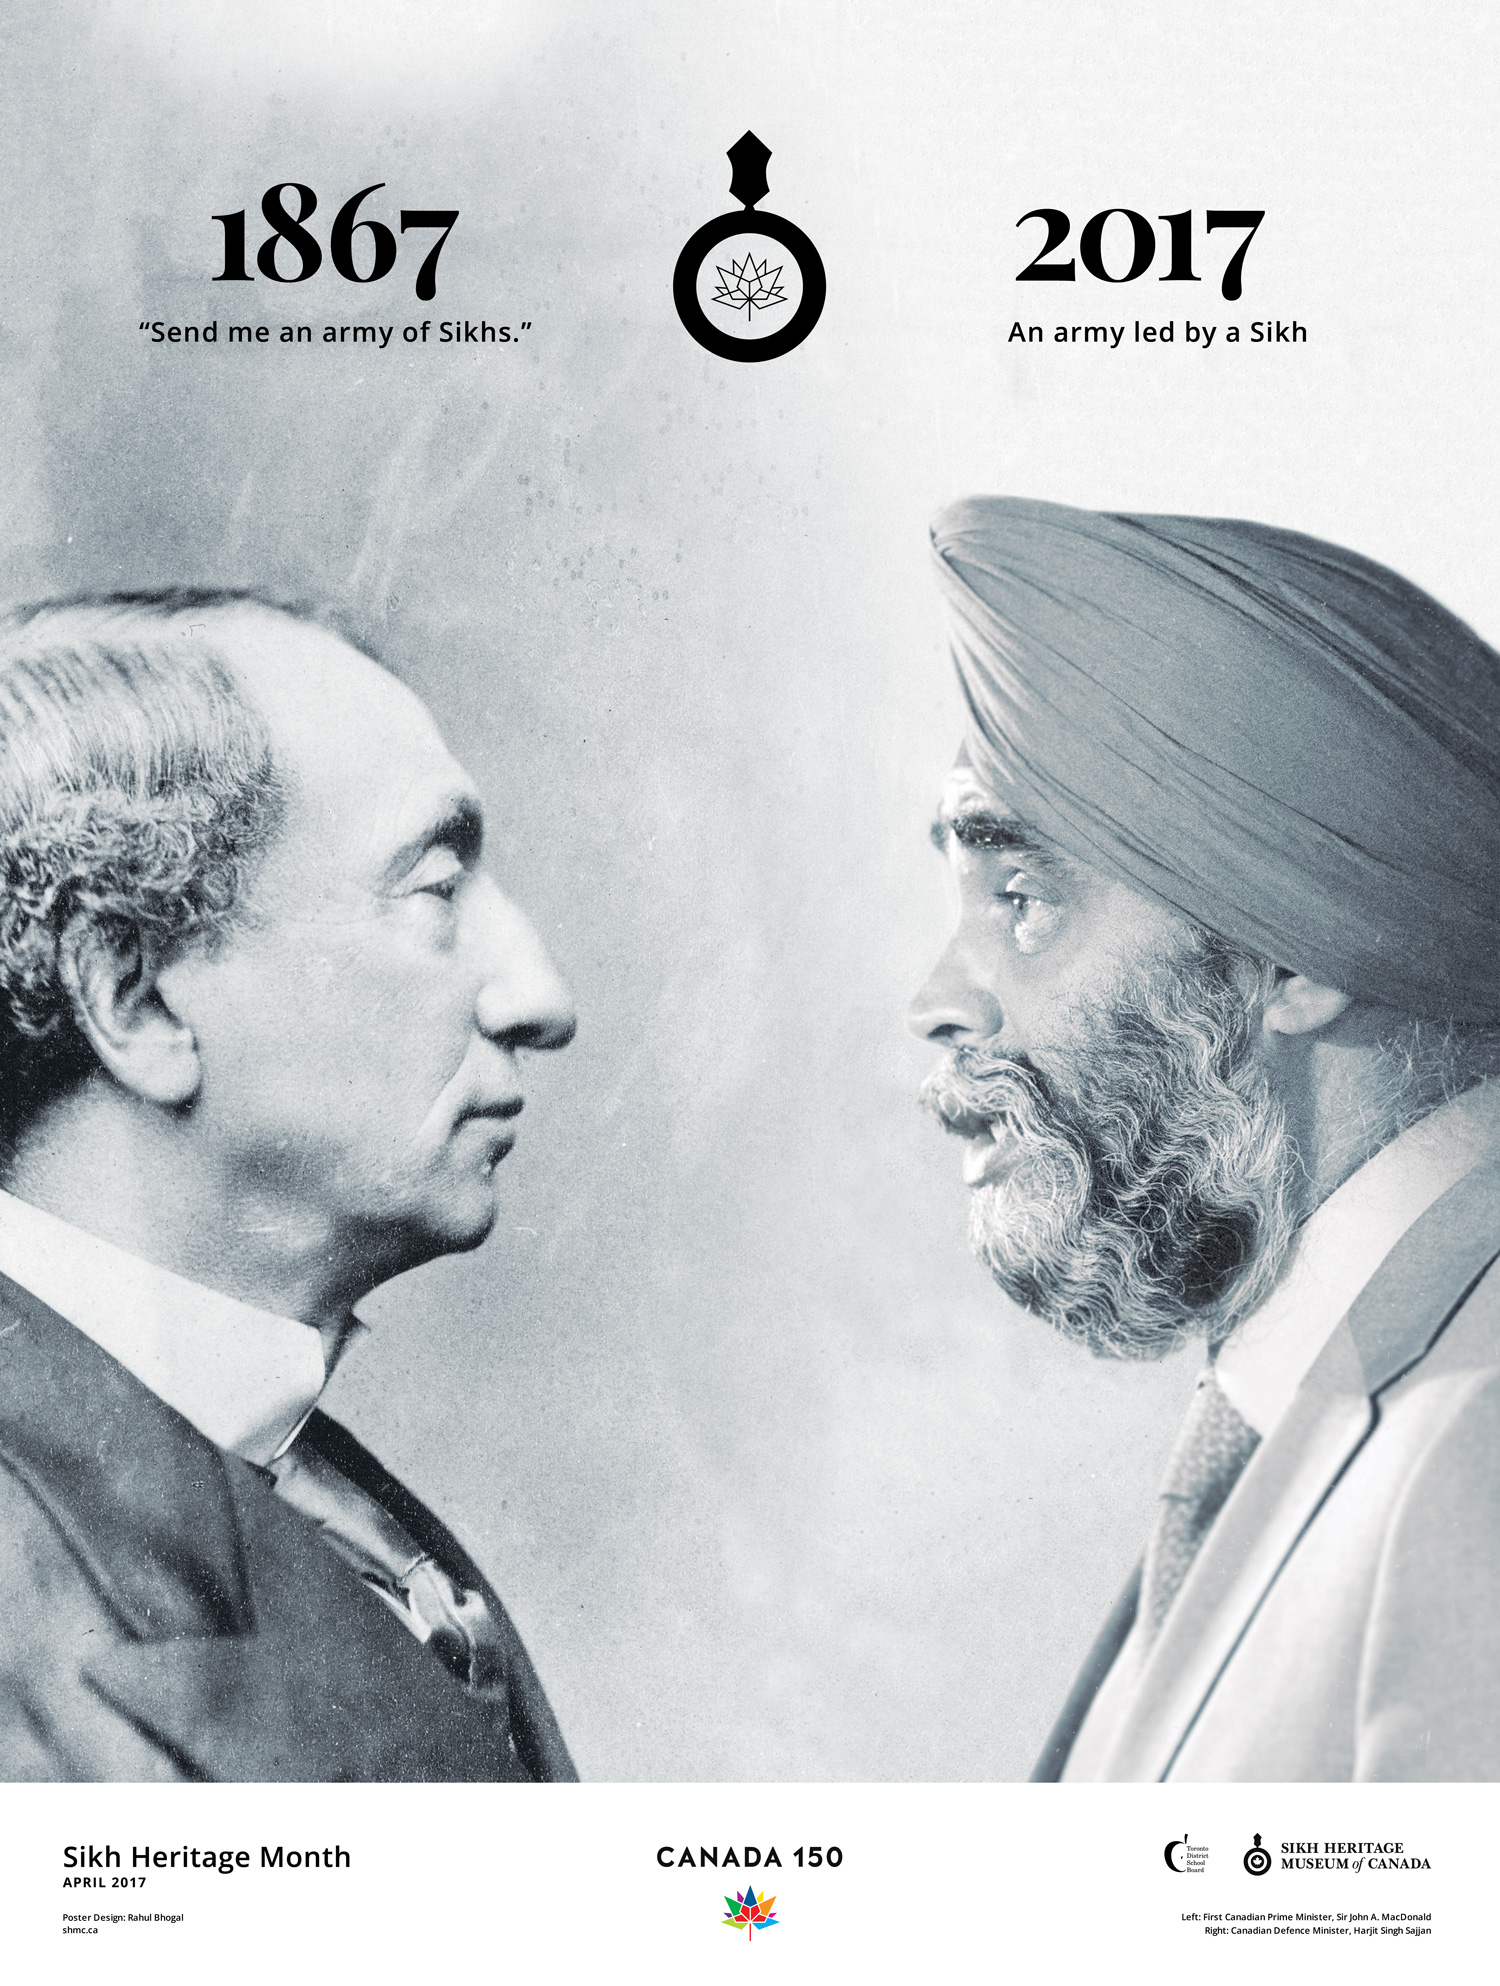 Sikh Heritage Month Act Receives Royal Assent